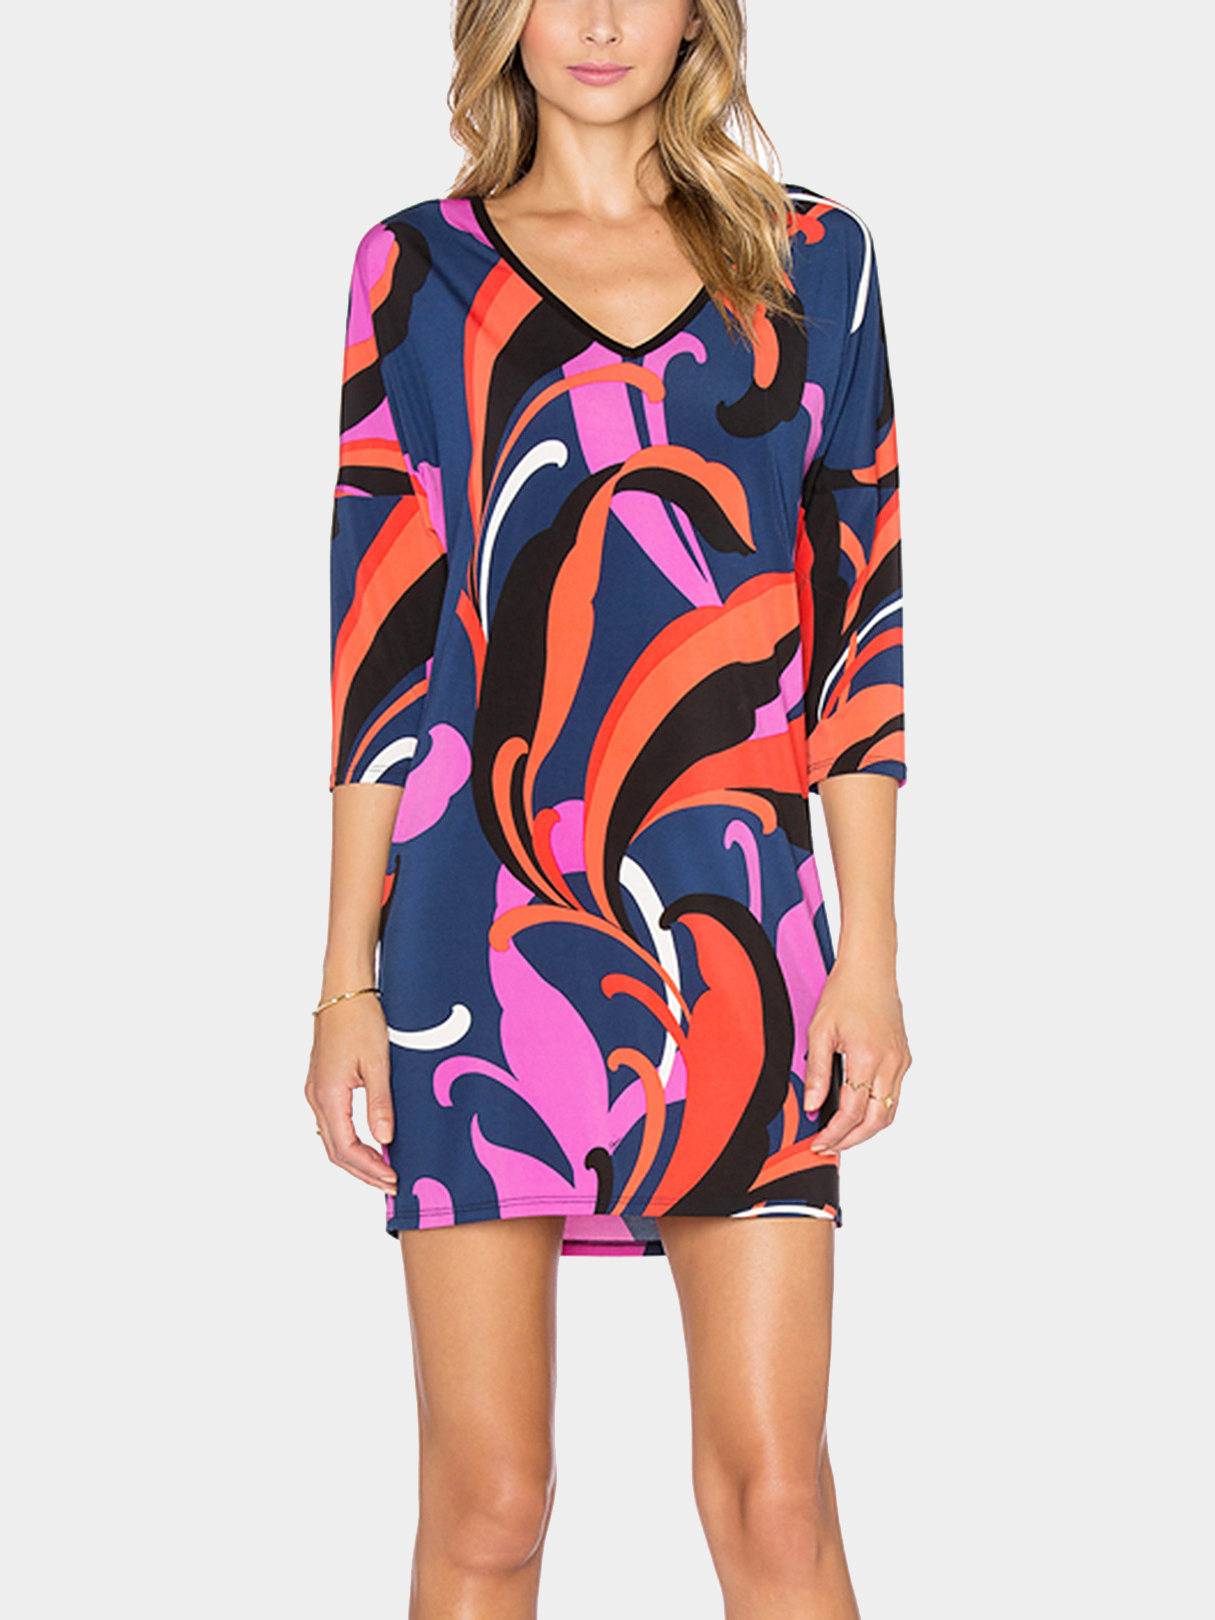 Colorful Abstract Print V-neck Dress